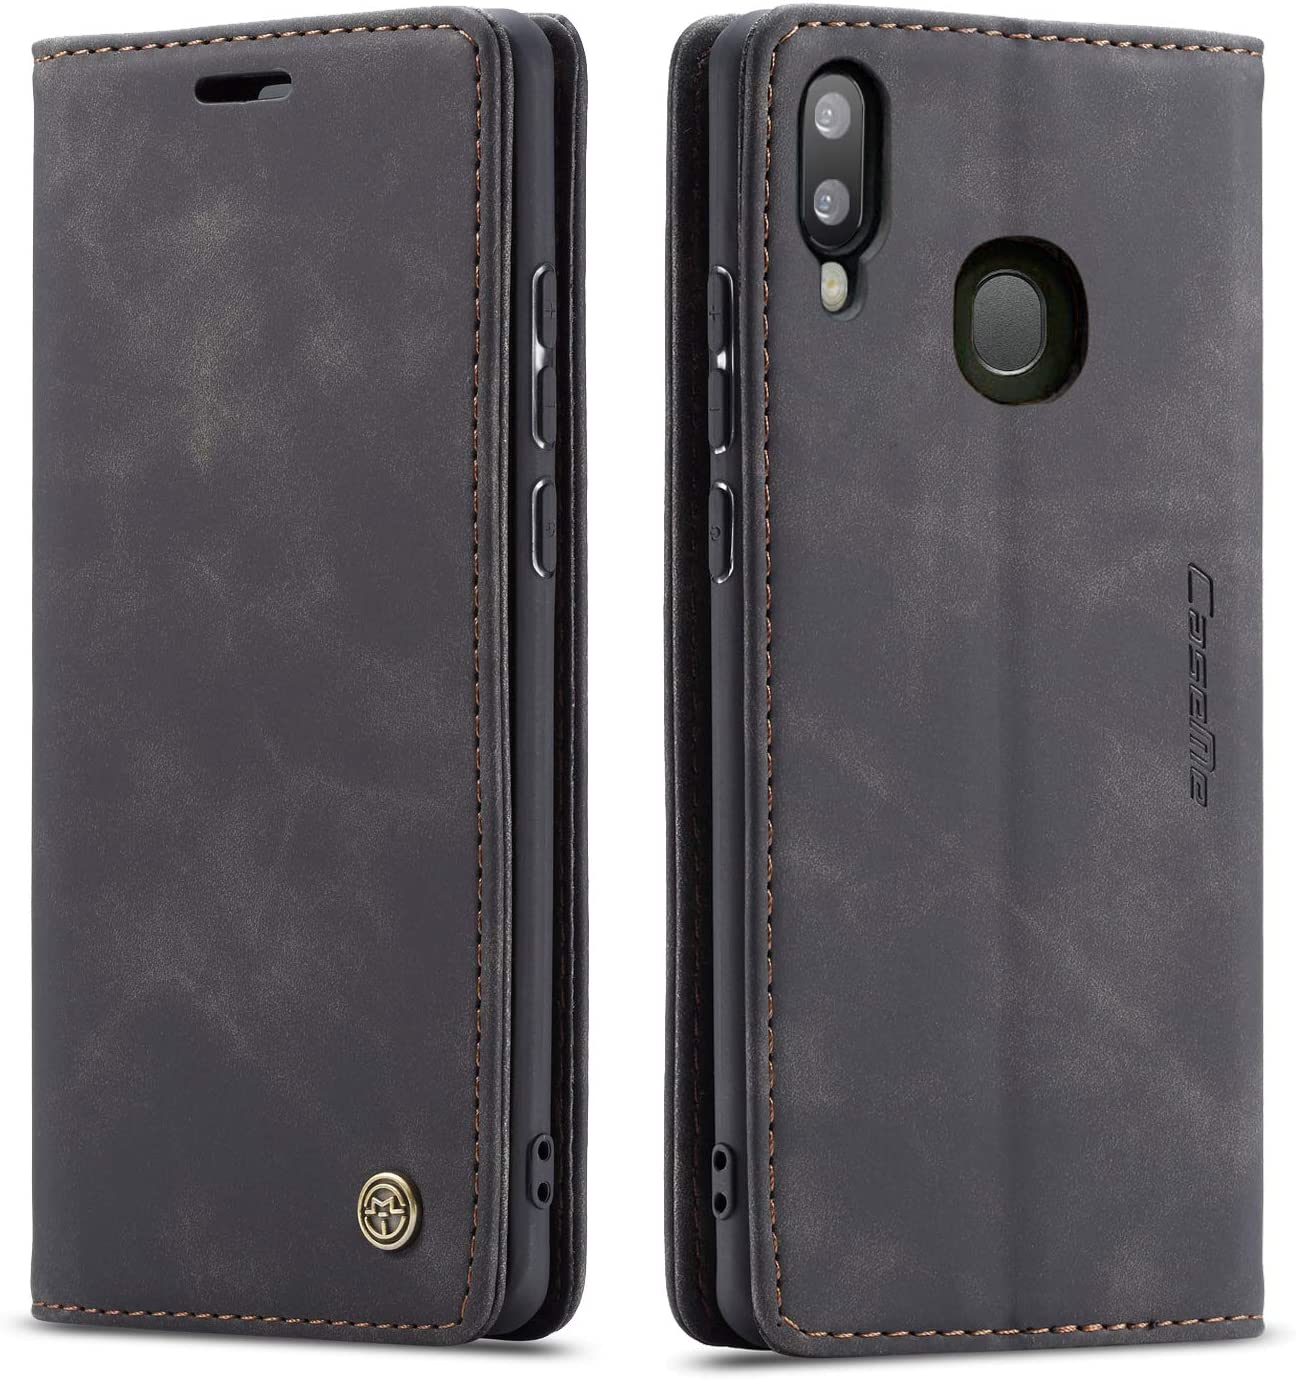 Galaxy A20 Case,Galaxy A30 Case,Bpowe Leather Wallet Case Classic Design with Card Slot and Magnetic Closure Flip Fold Case for Samsung Galaxy A20/Galaxy A30 (Black)